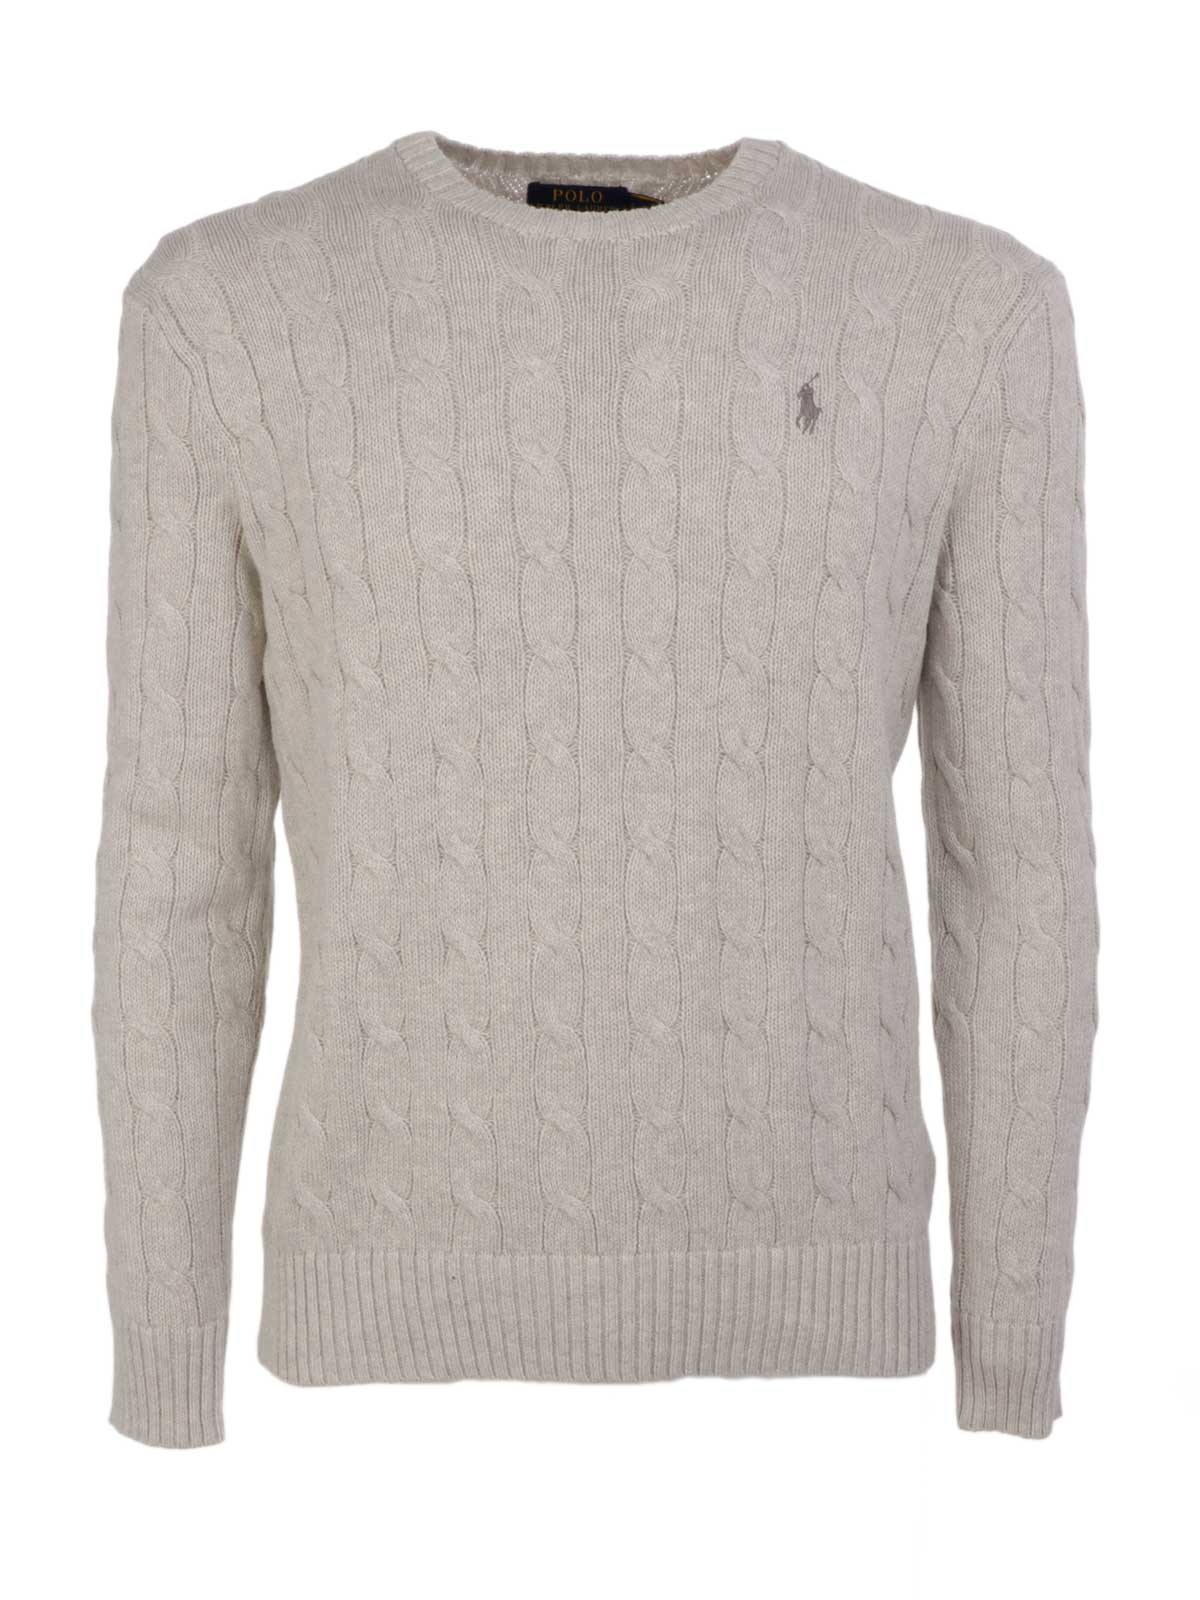 80dd99cde3395e POLO RALPH LAUREN Men s Cable-Knit Sweater Light Grey Htr ...